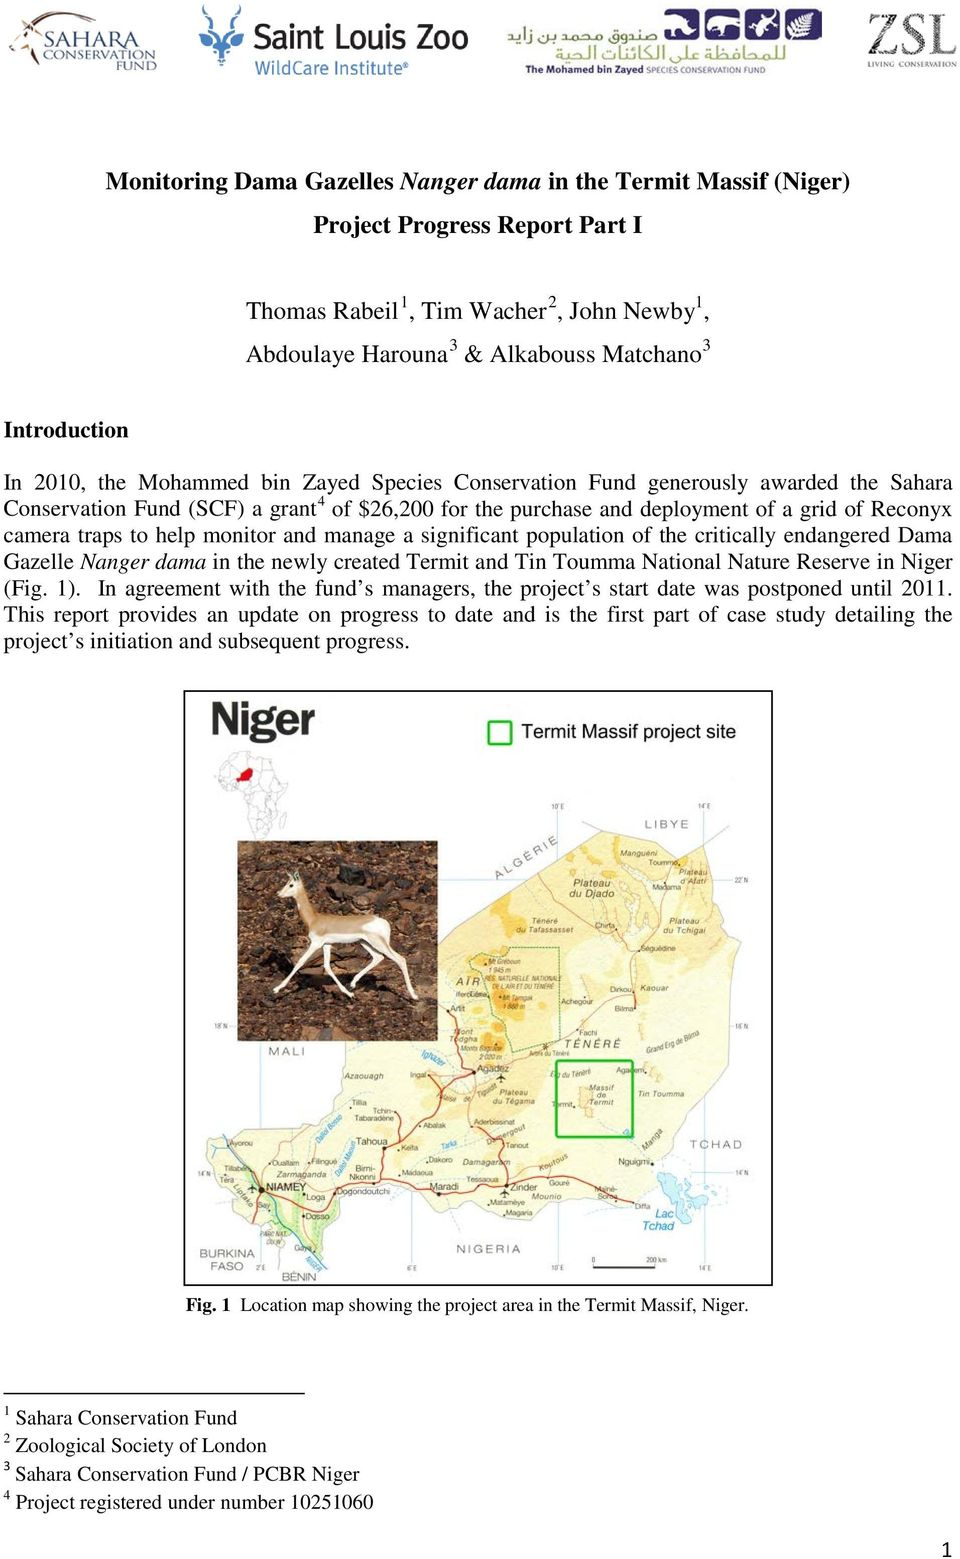 to help monitor and manage a significant population of the critically endangered Dama Gazelle Nanger dama in the newly created Termit and Tin Toumma National Nature Reserve in Niger (Fig. 1).